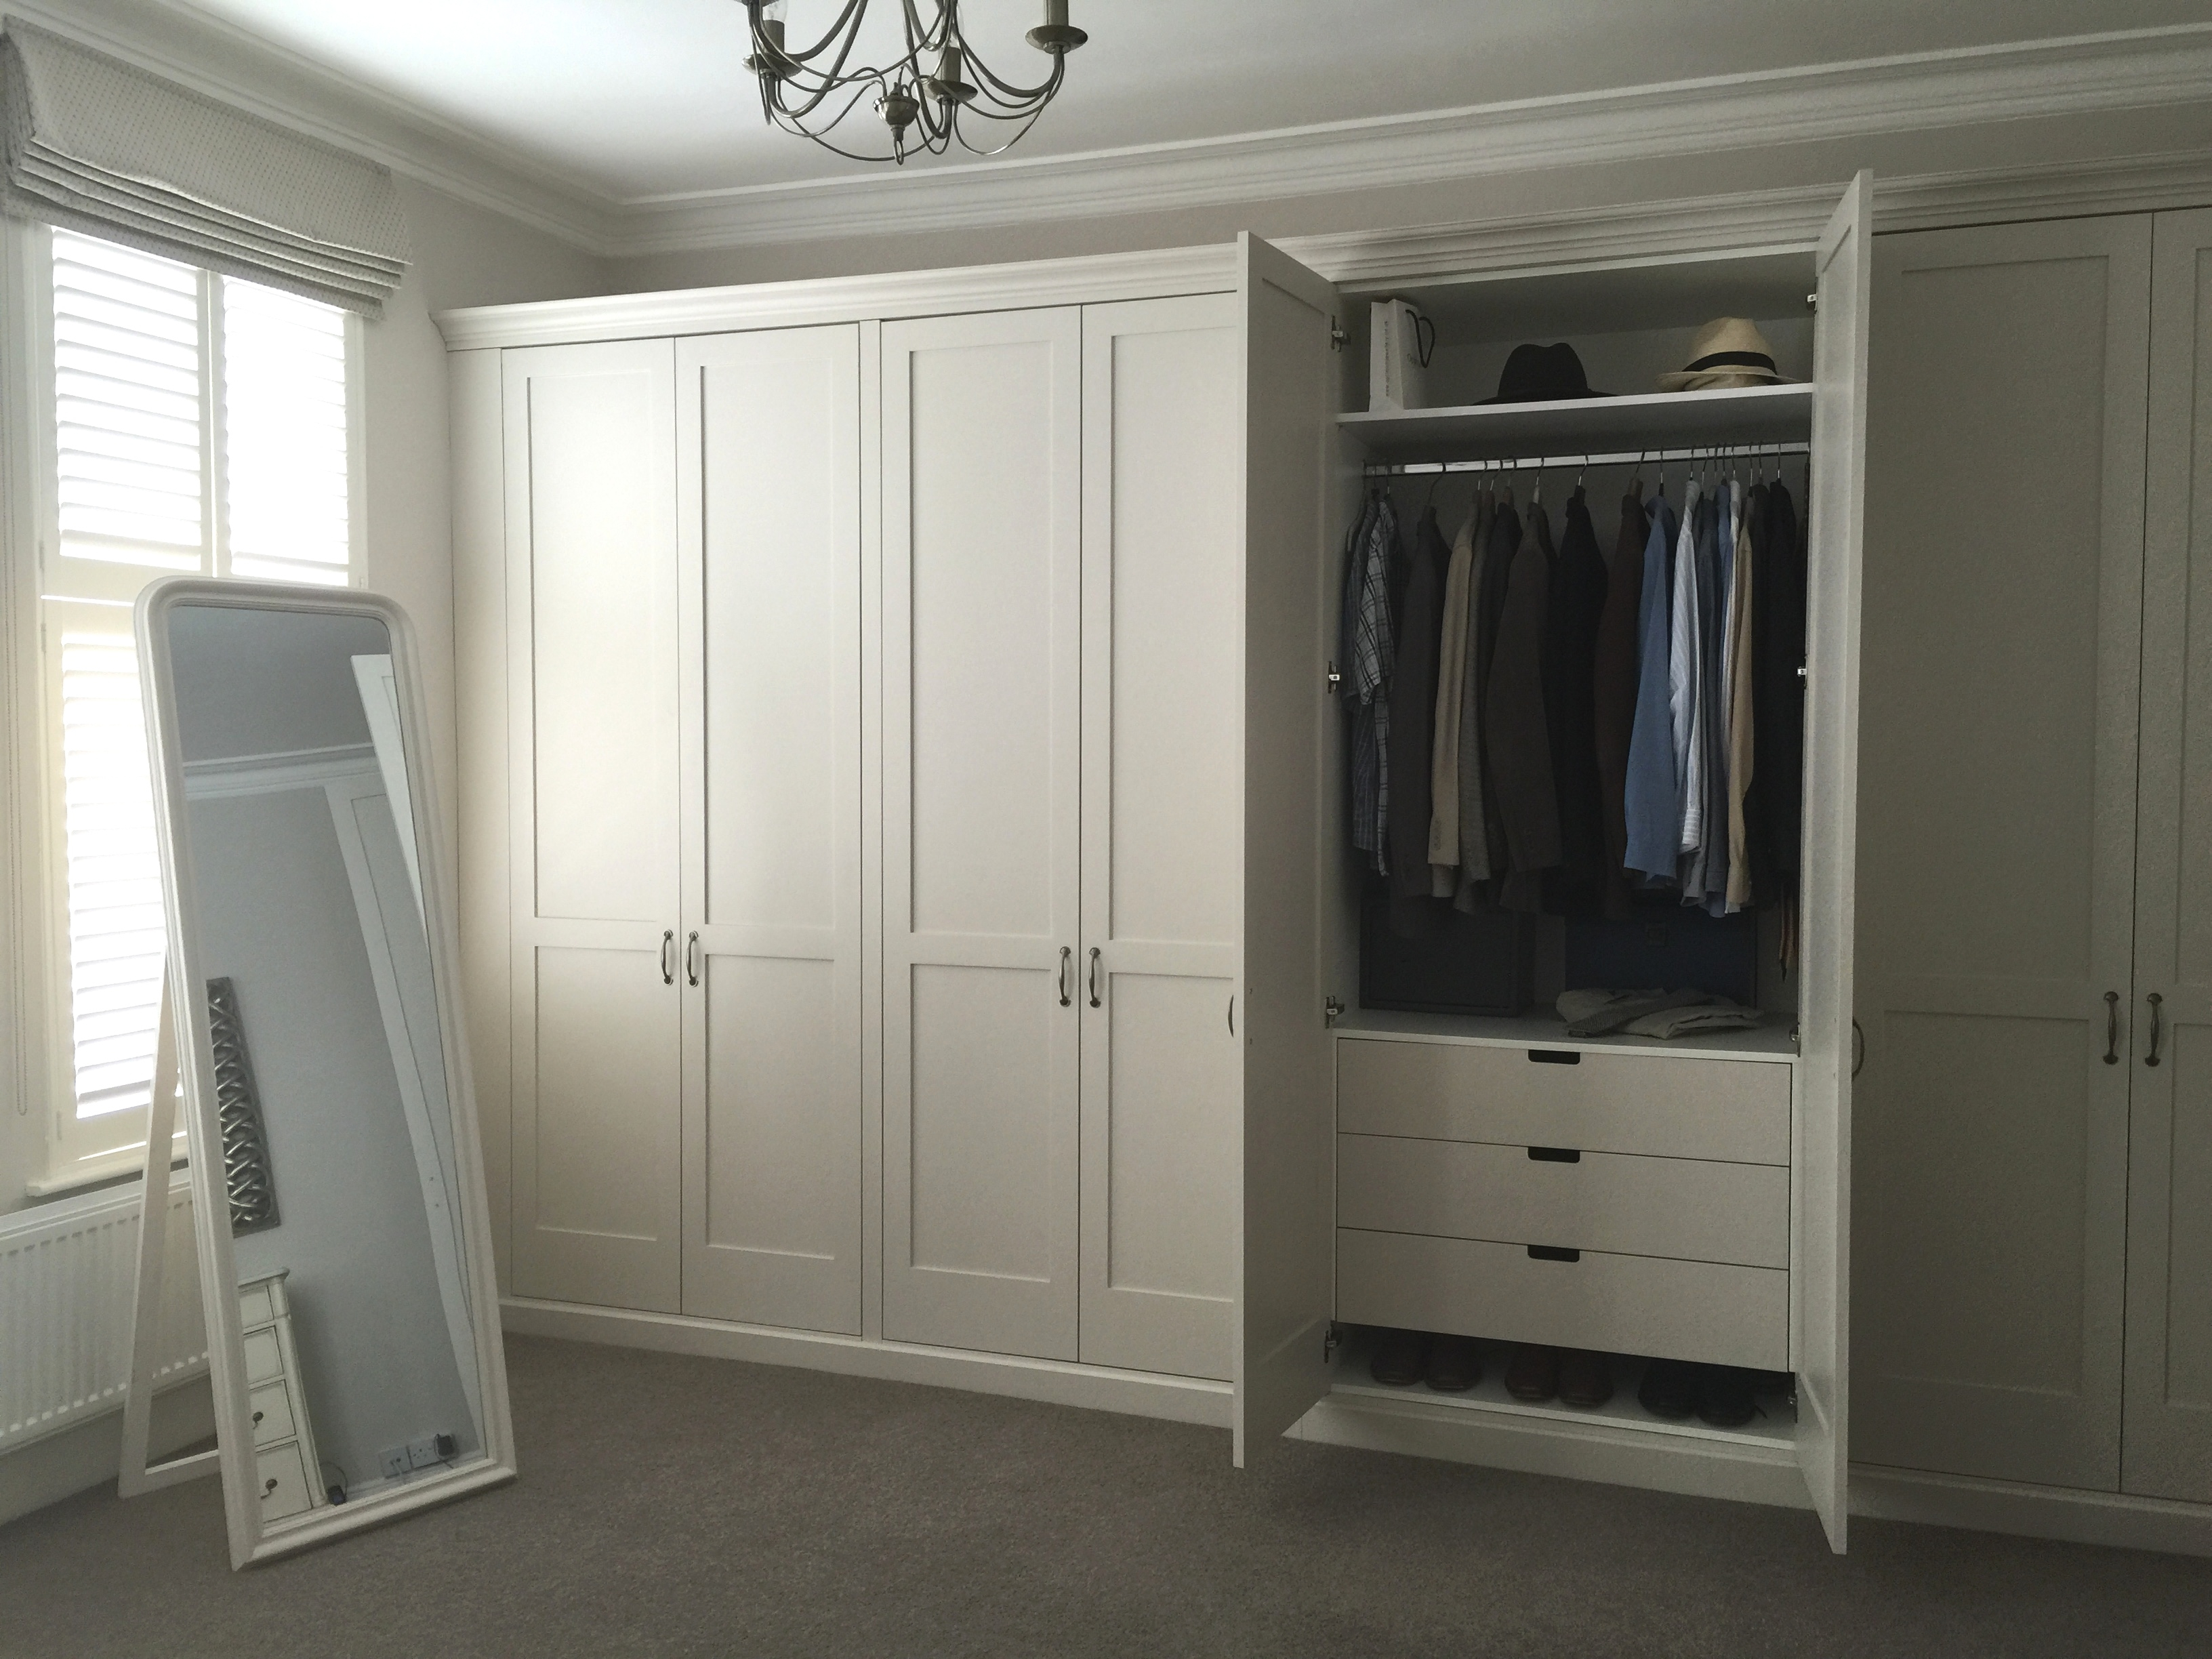 Traditional Shaker Wardrobes With Drawers Inside Shelves And With Wardrobes With Drawers And Shelves (Image 11 of 15)